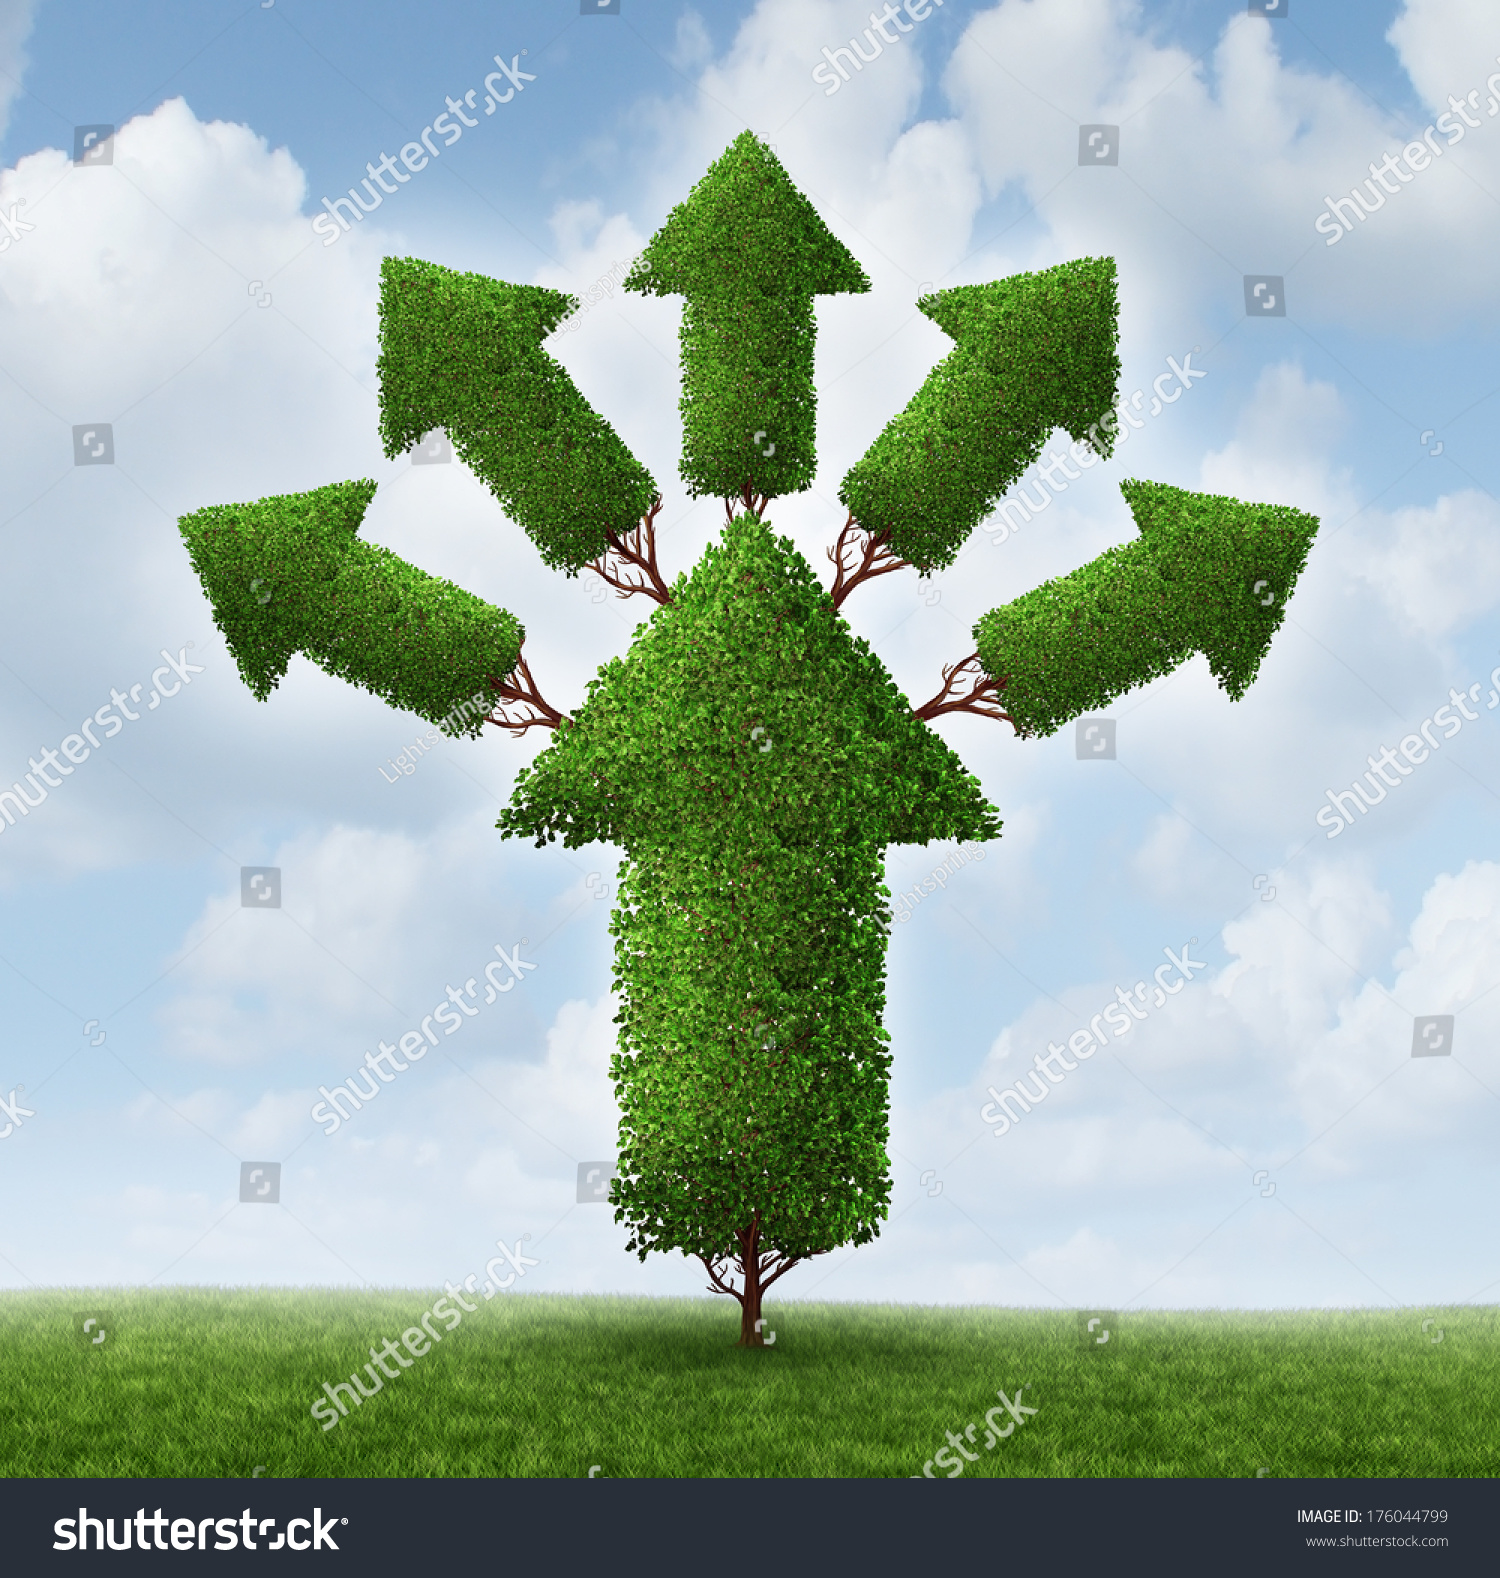 Success expansion business concept tree shaped stock illustration 176044799 shutterstock - Successful flower growing business ...